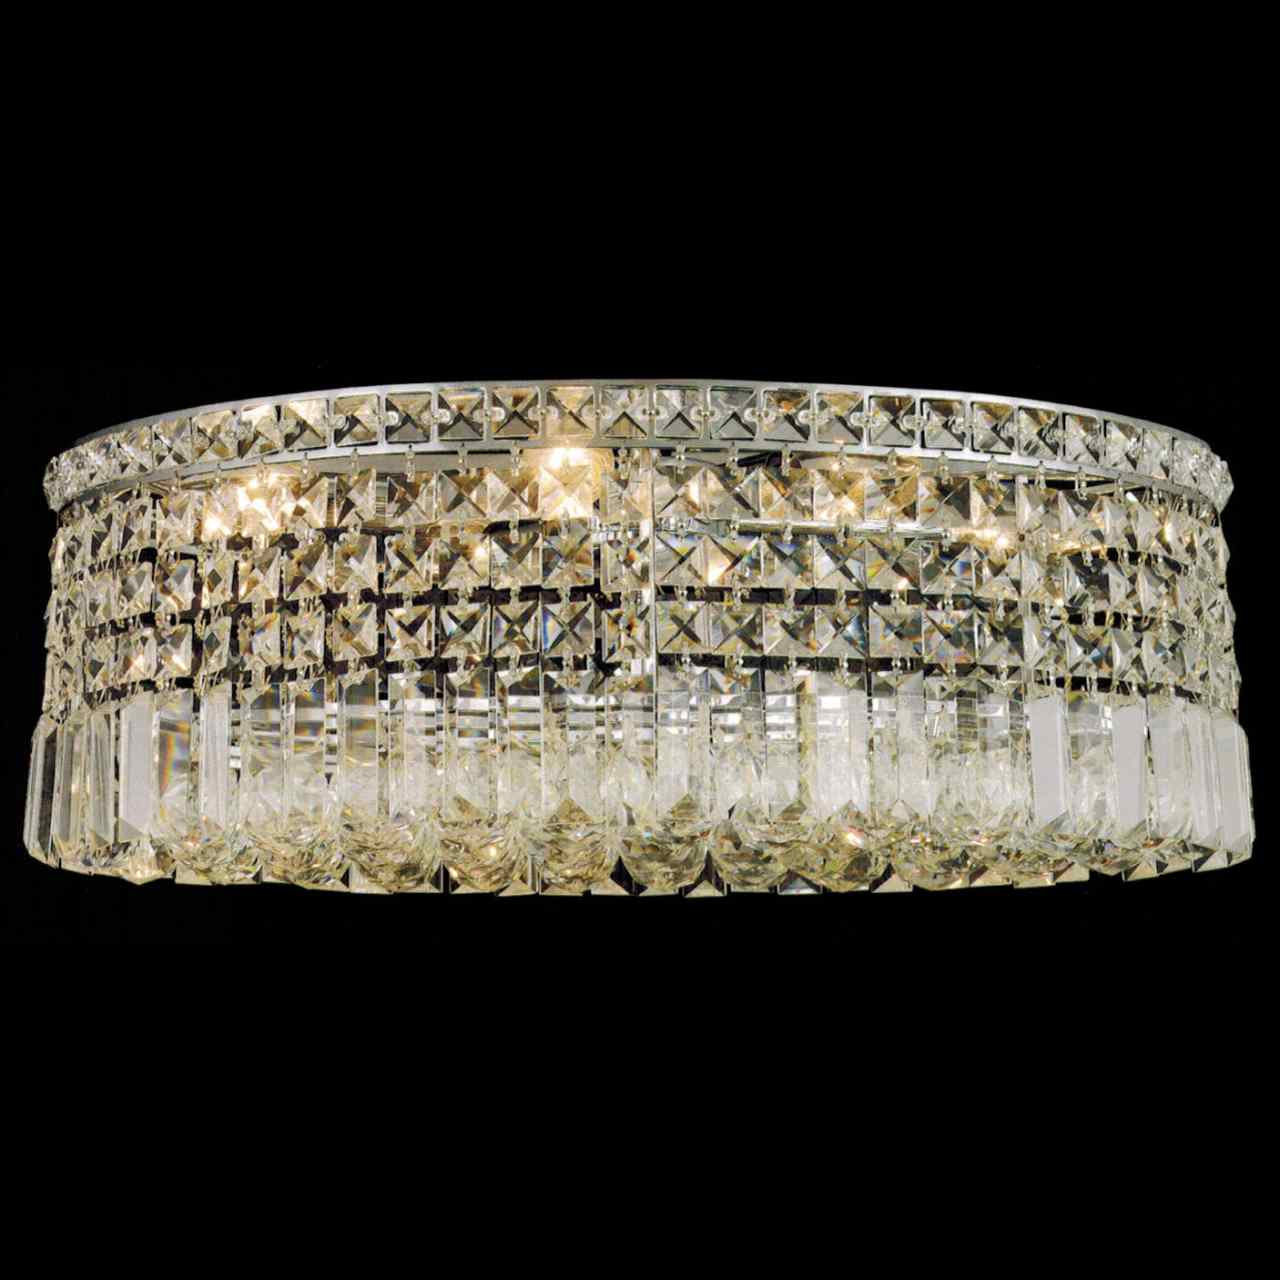 Brizzo Lighting Stores 21 Quot Bossolo Transitional Crystal